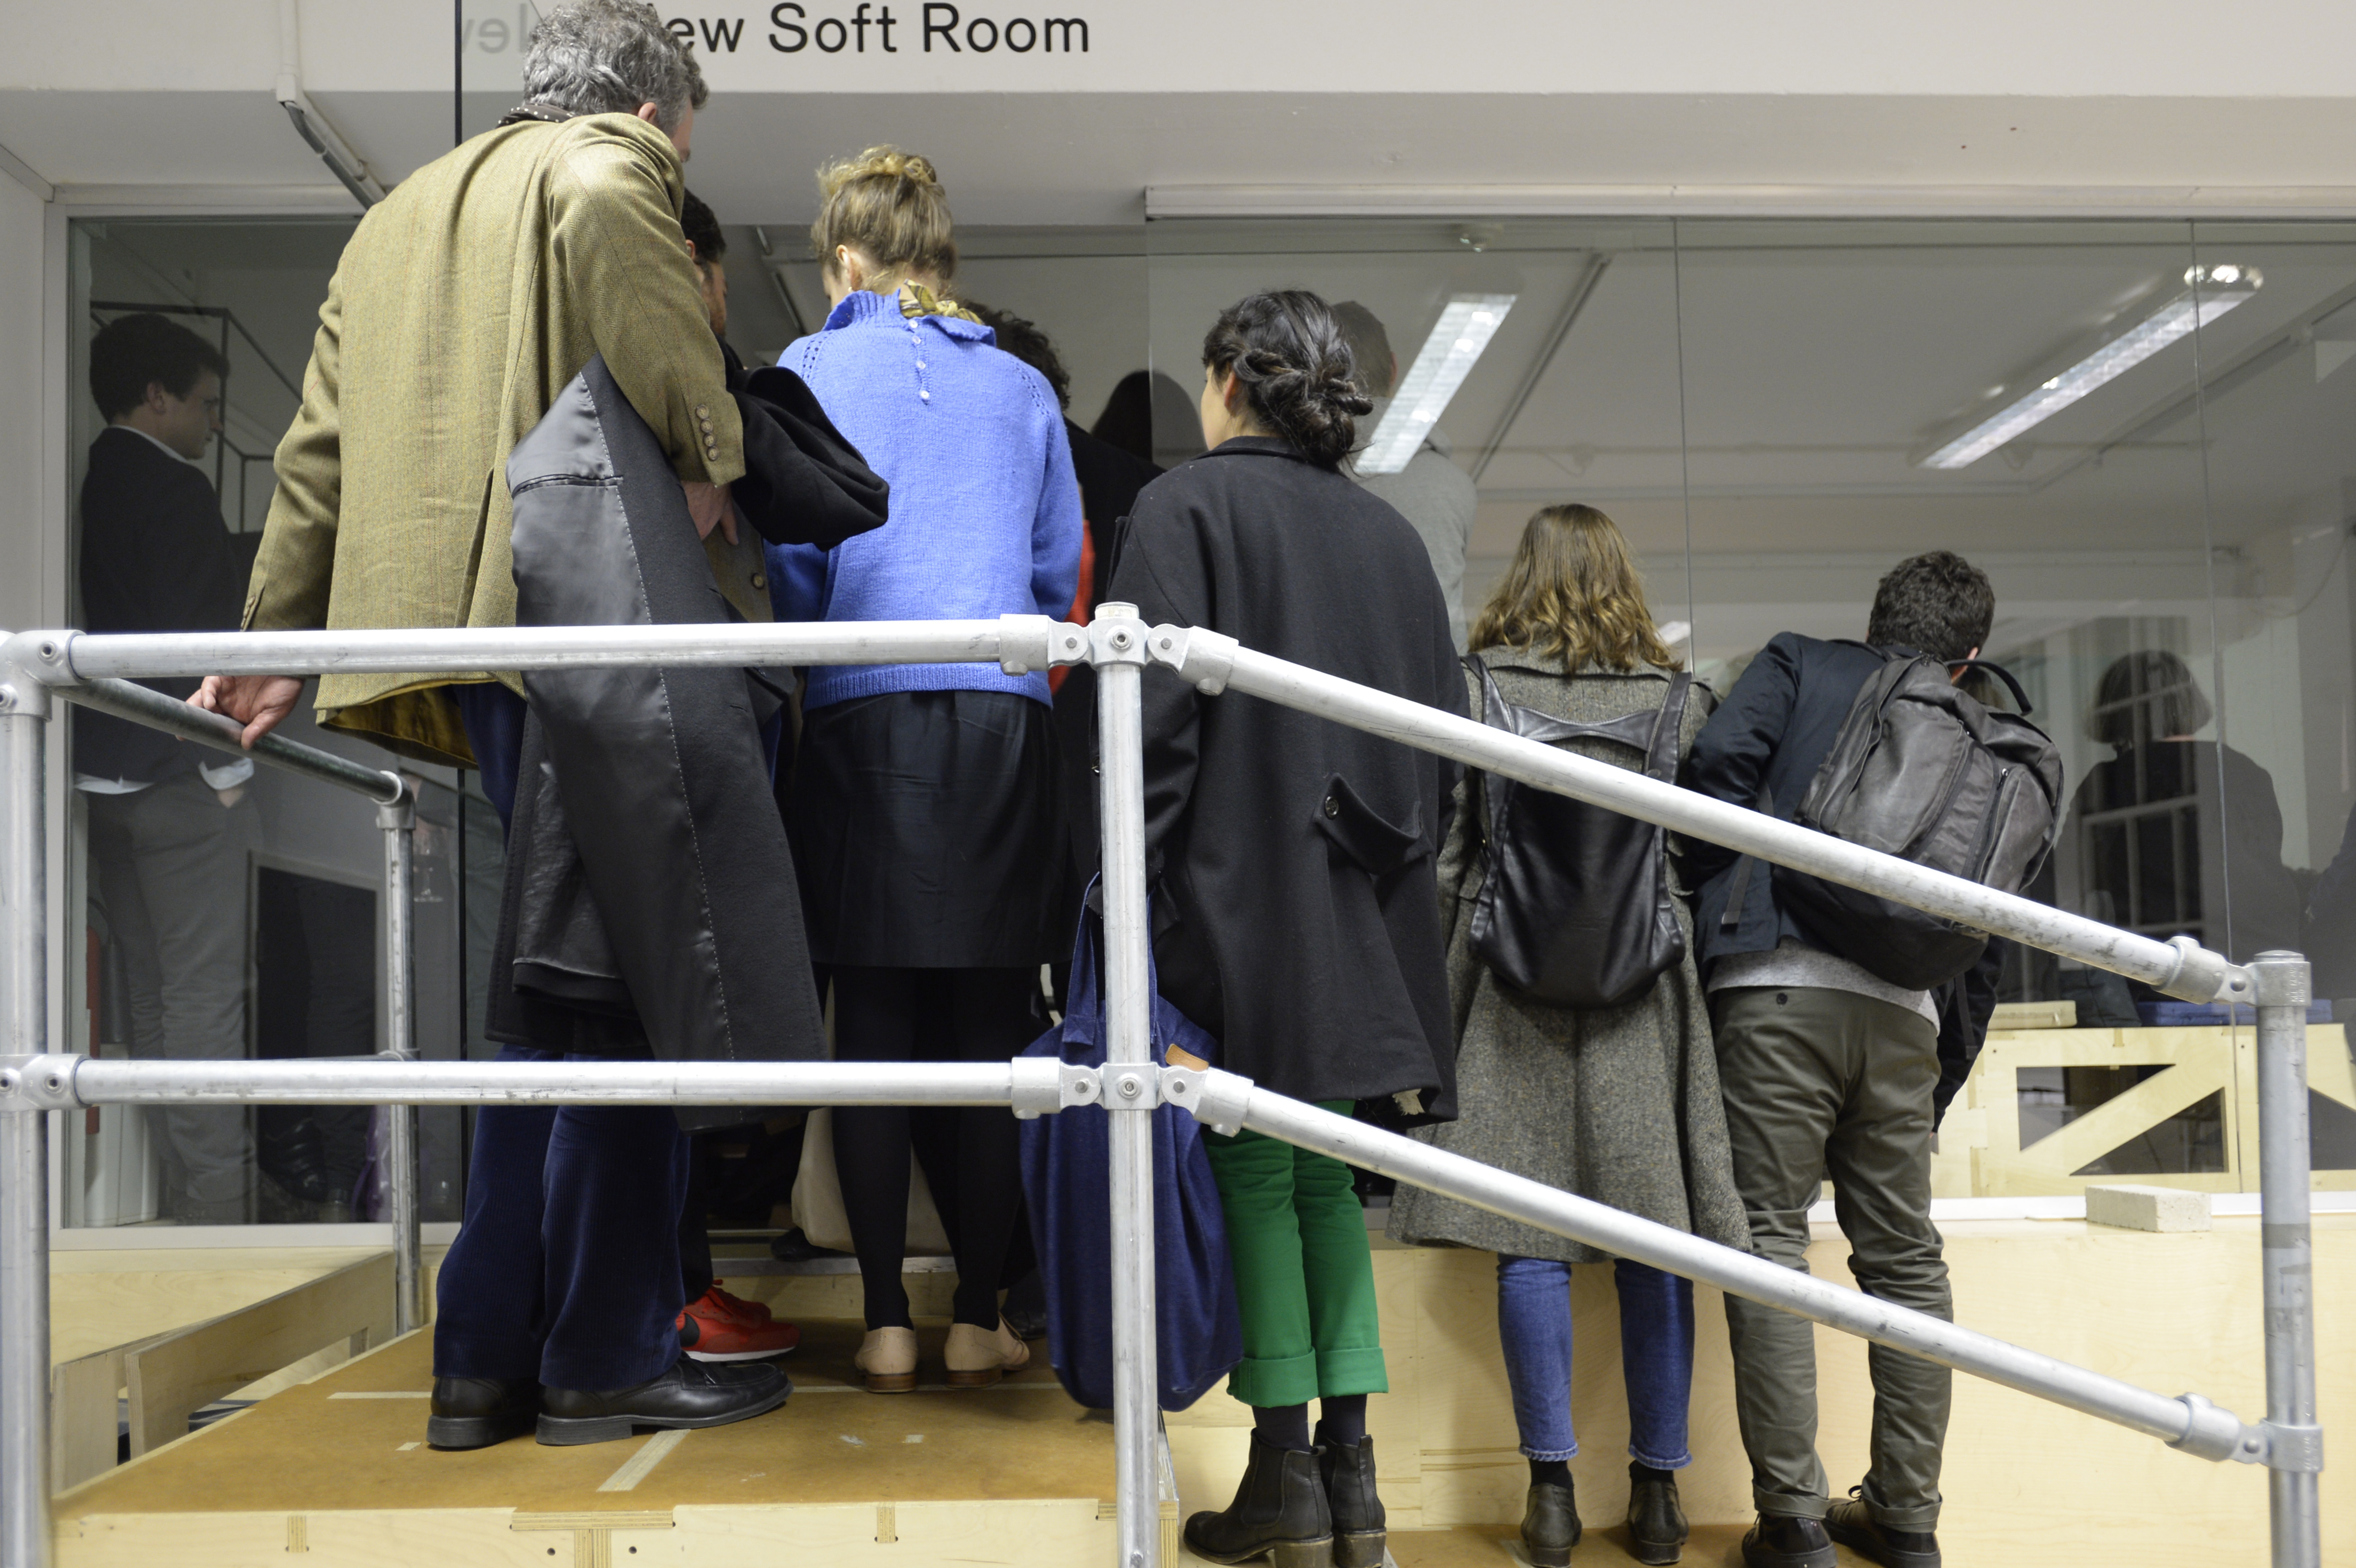 The queue at the entrance to the New Soft Room